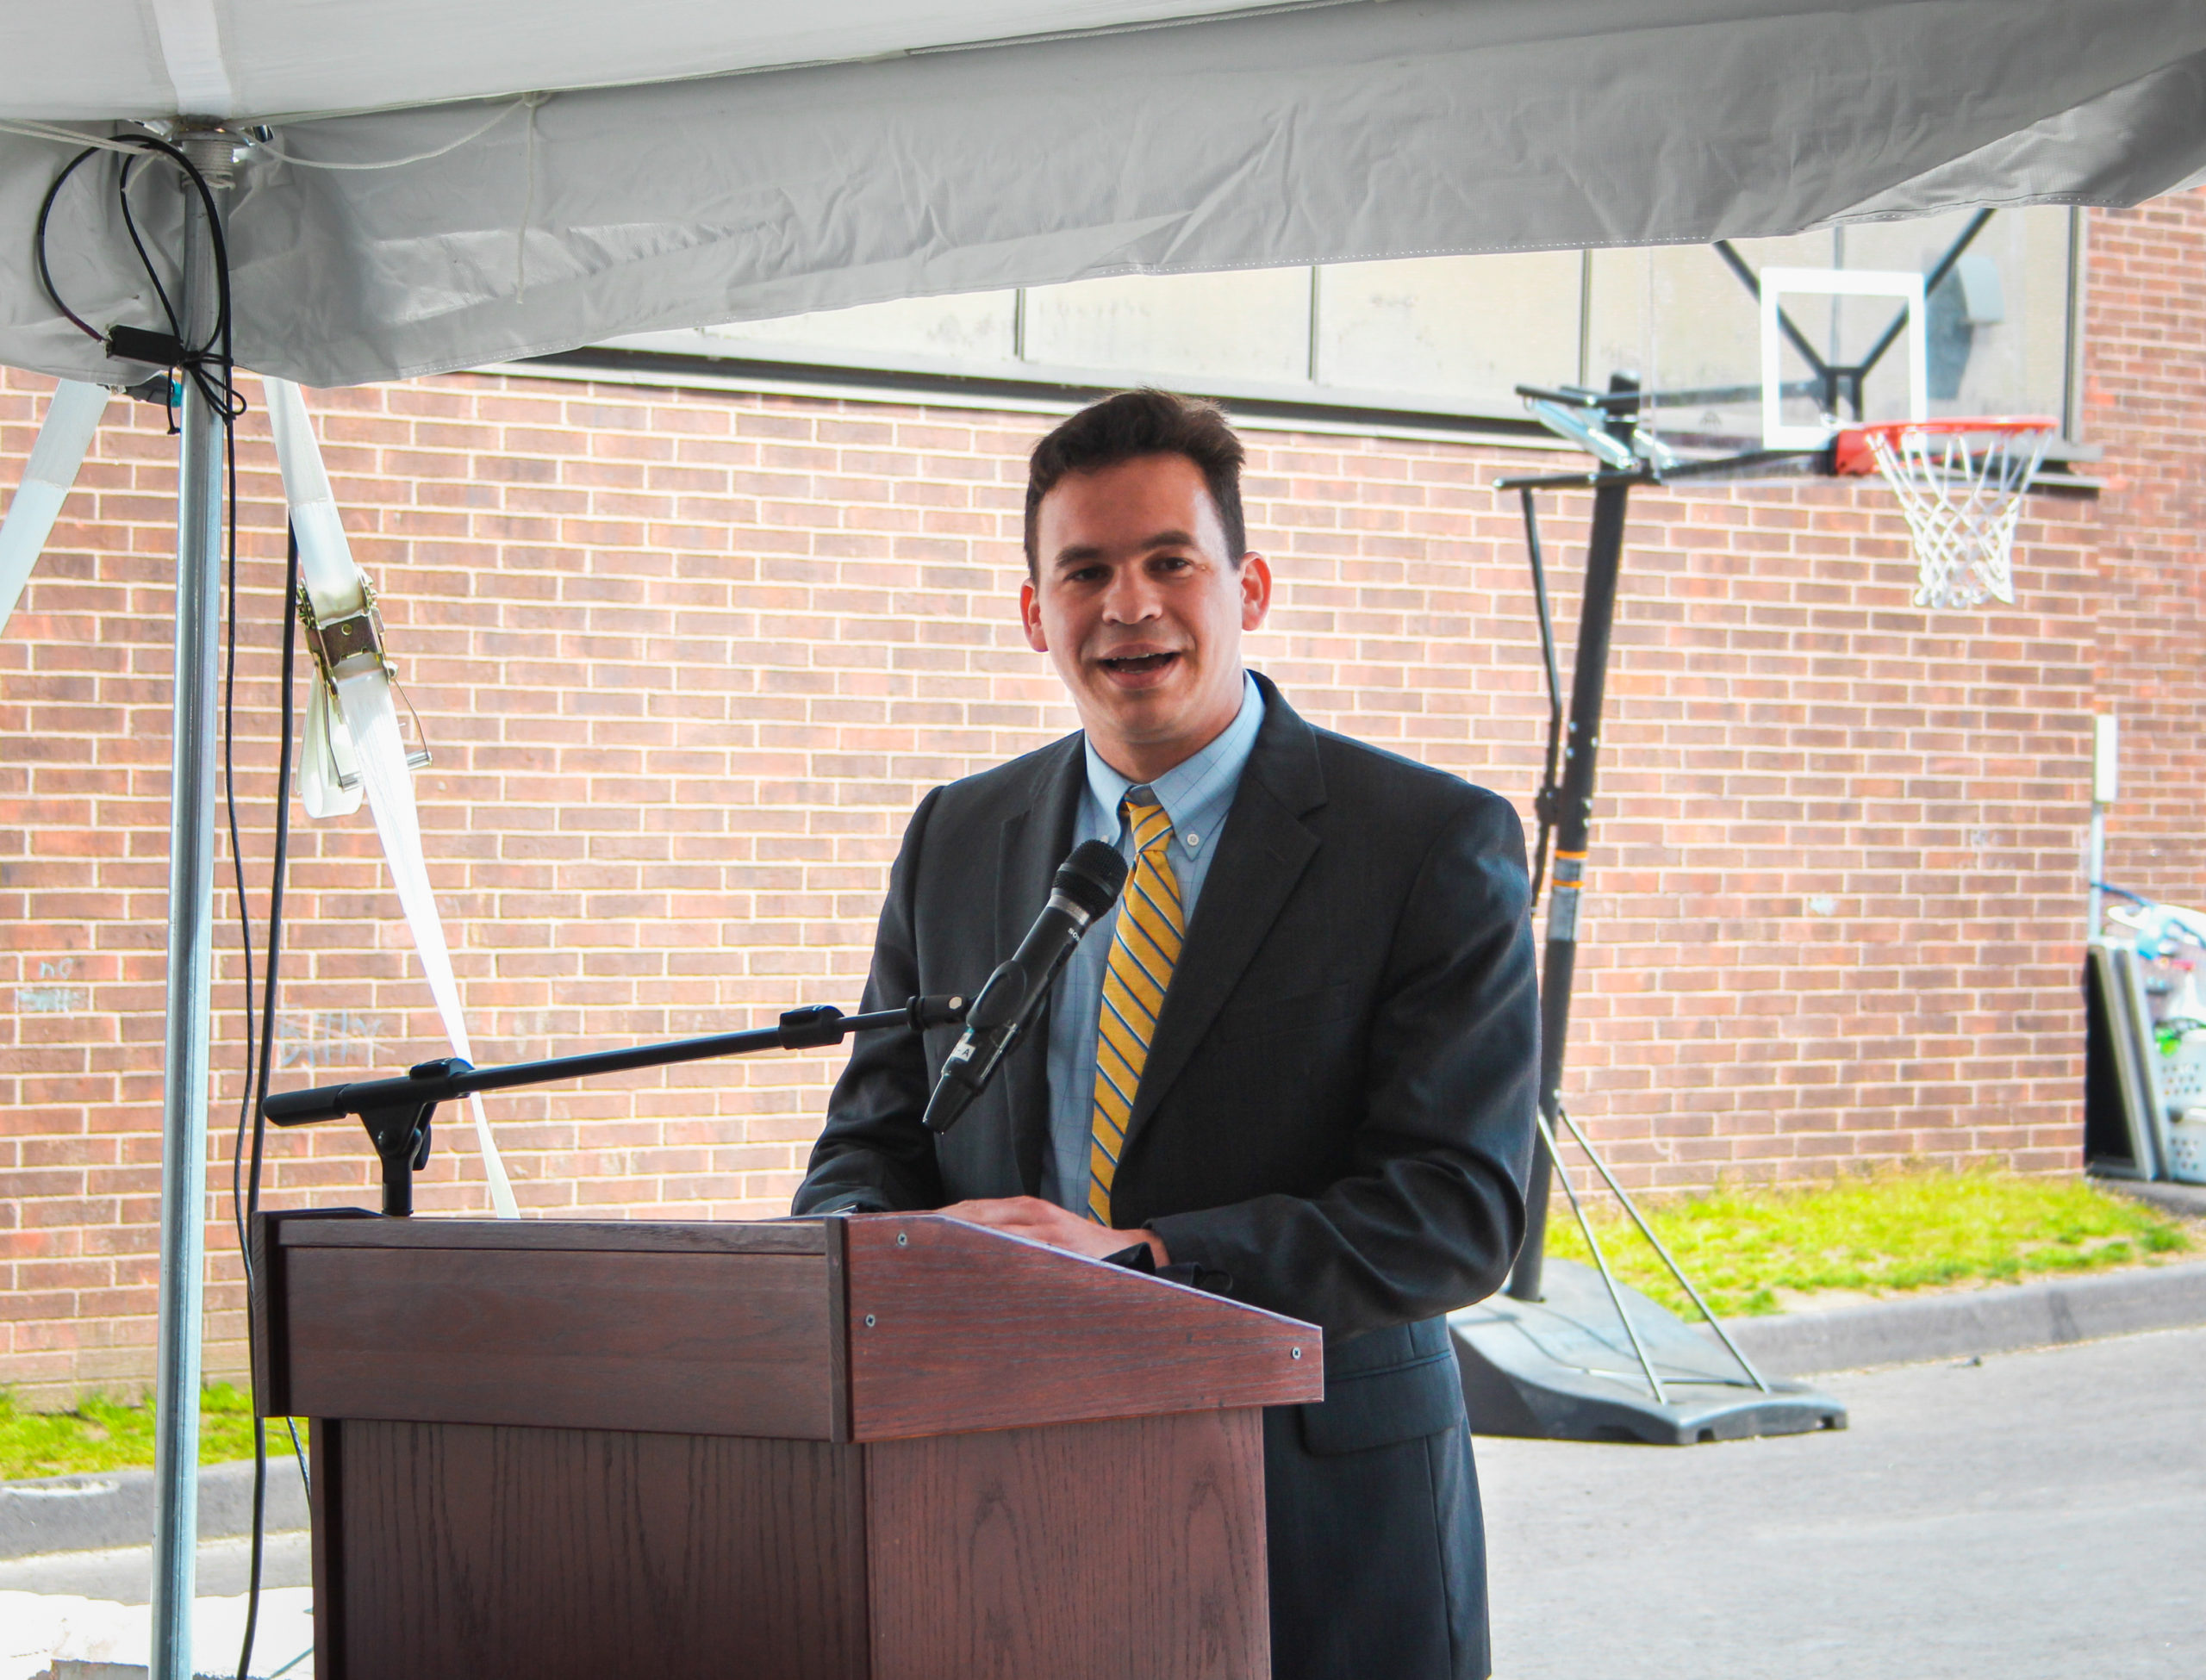 Rep. Sena speaks at the topping off ceremony for the new Twin Elementary School in West Acton